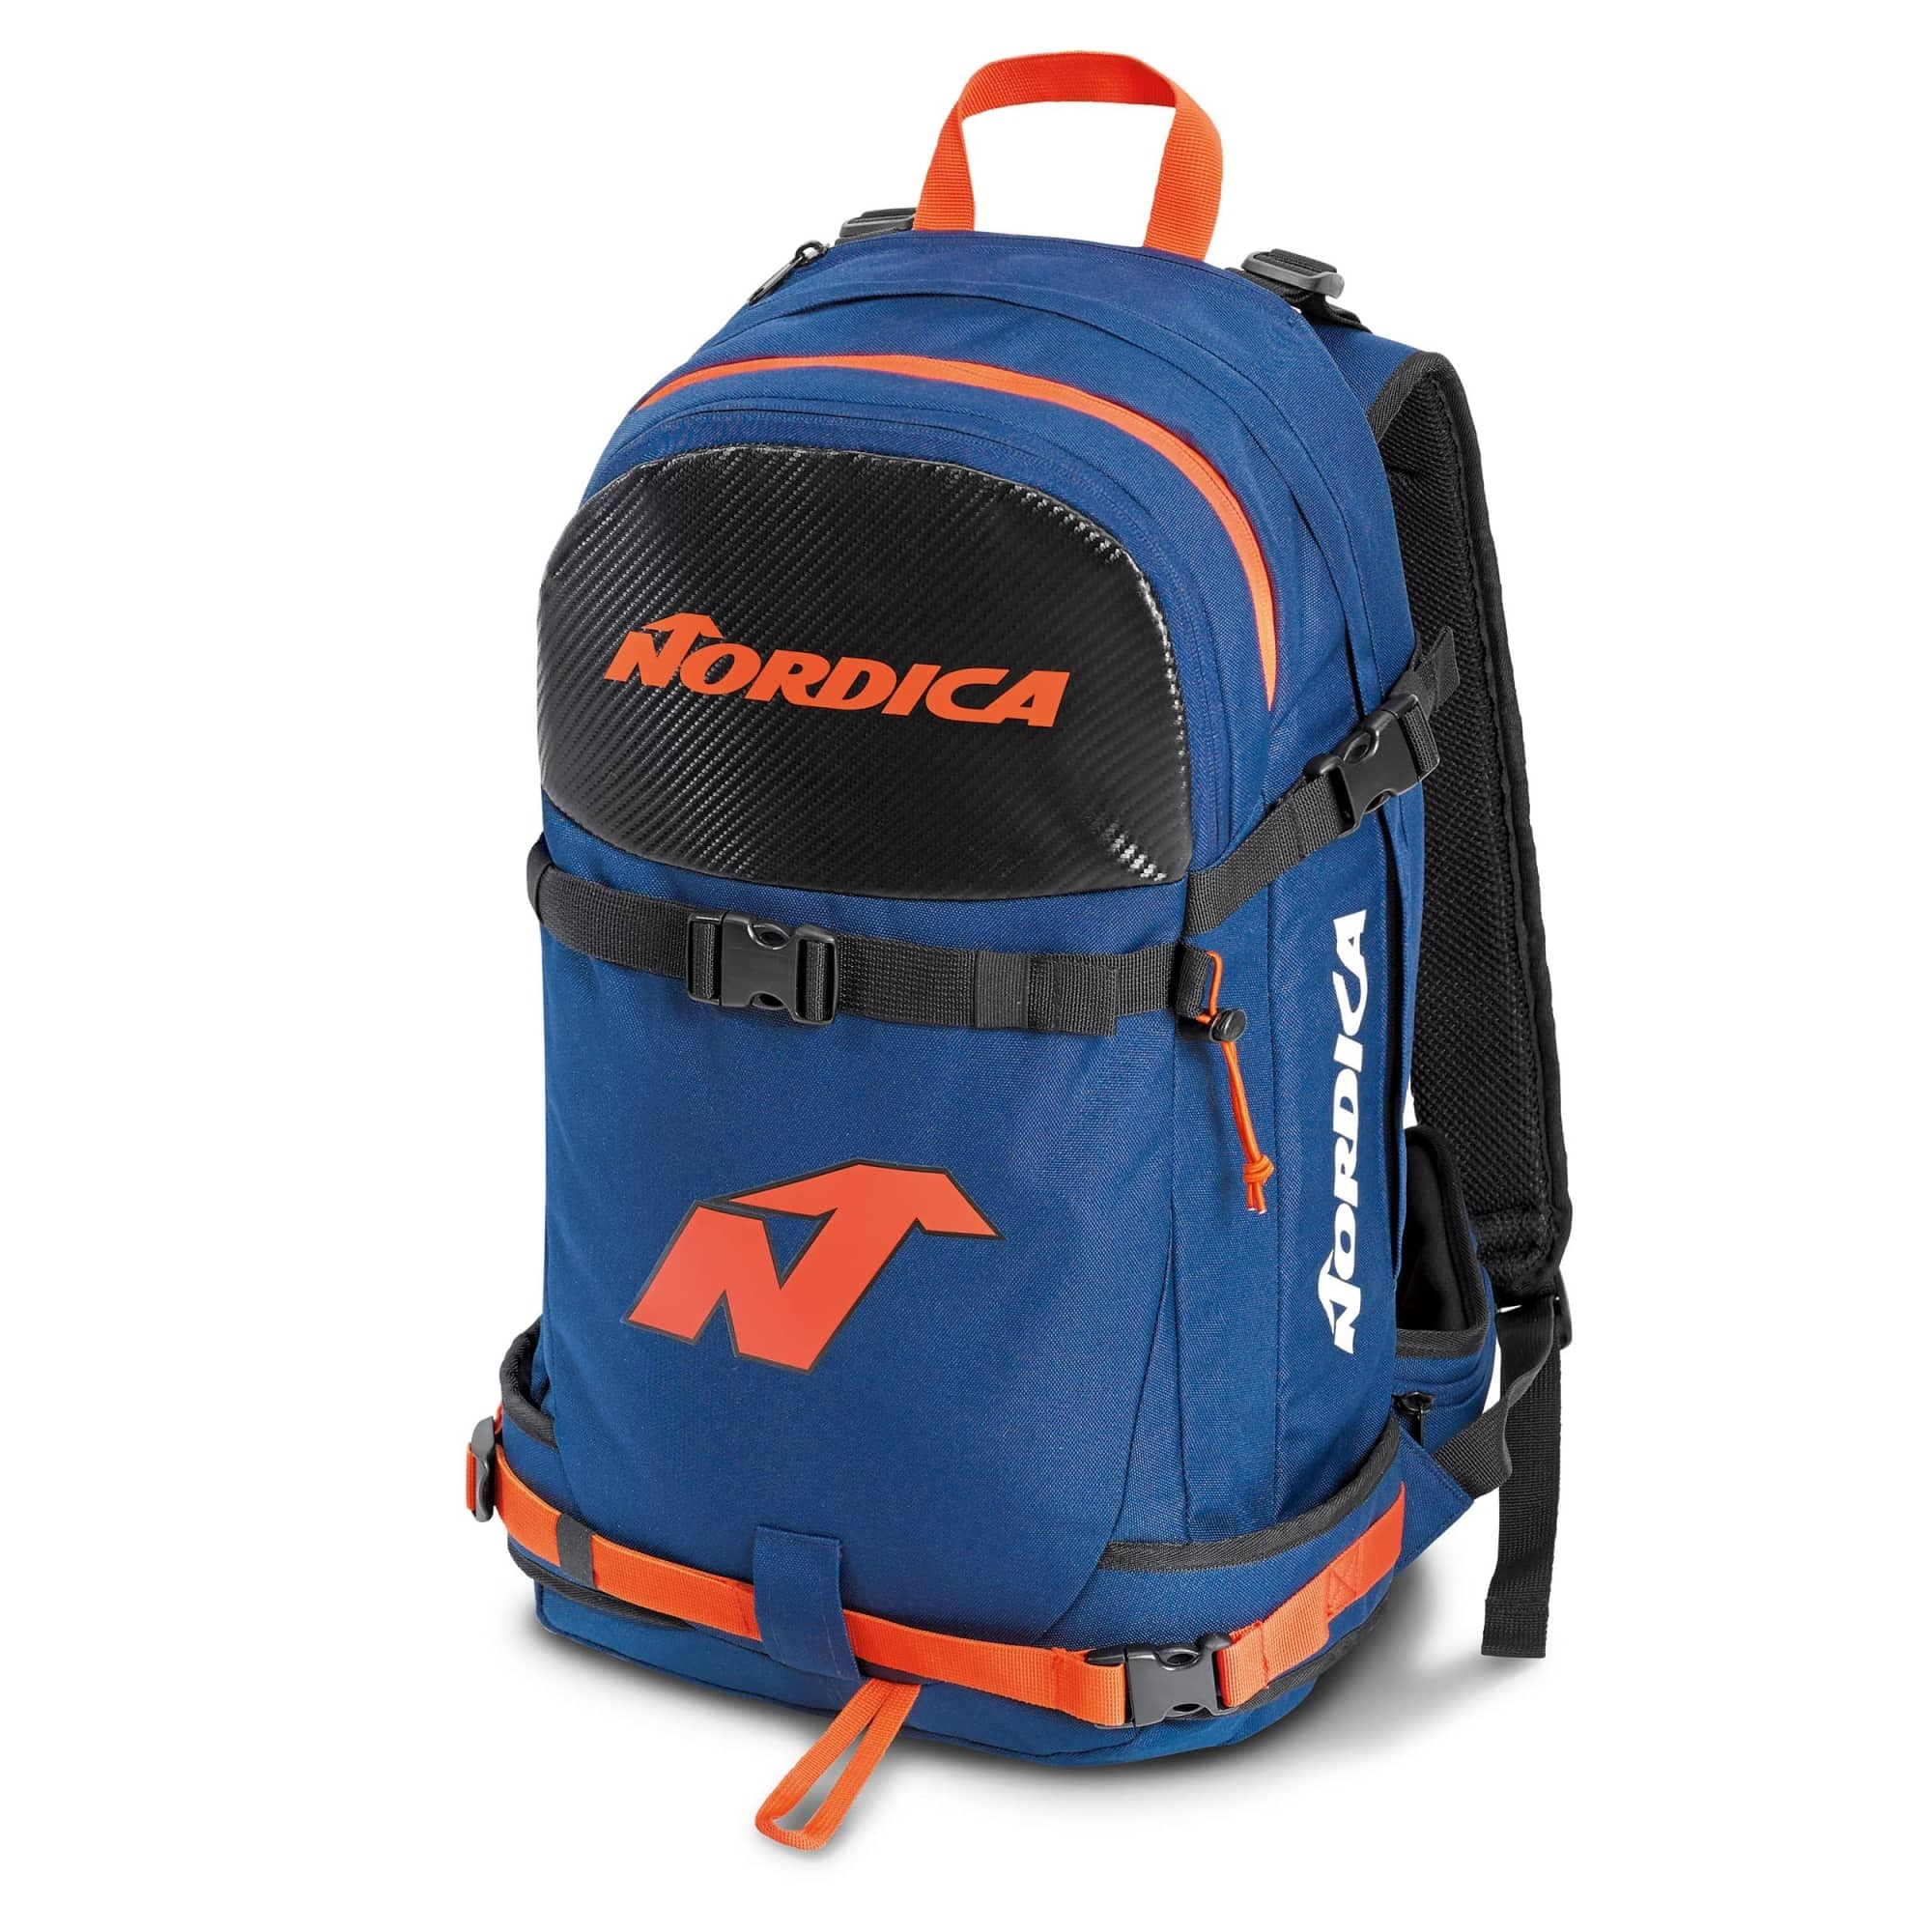 Nordica Active Mountain Backpack